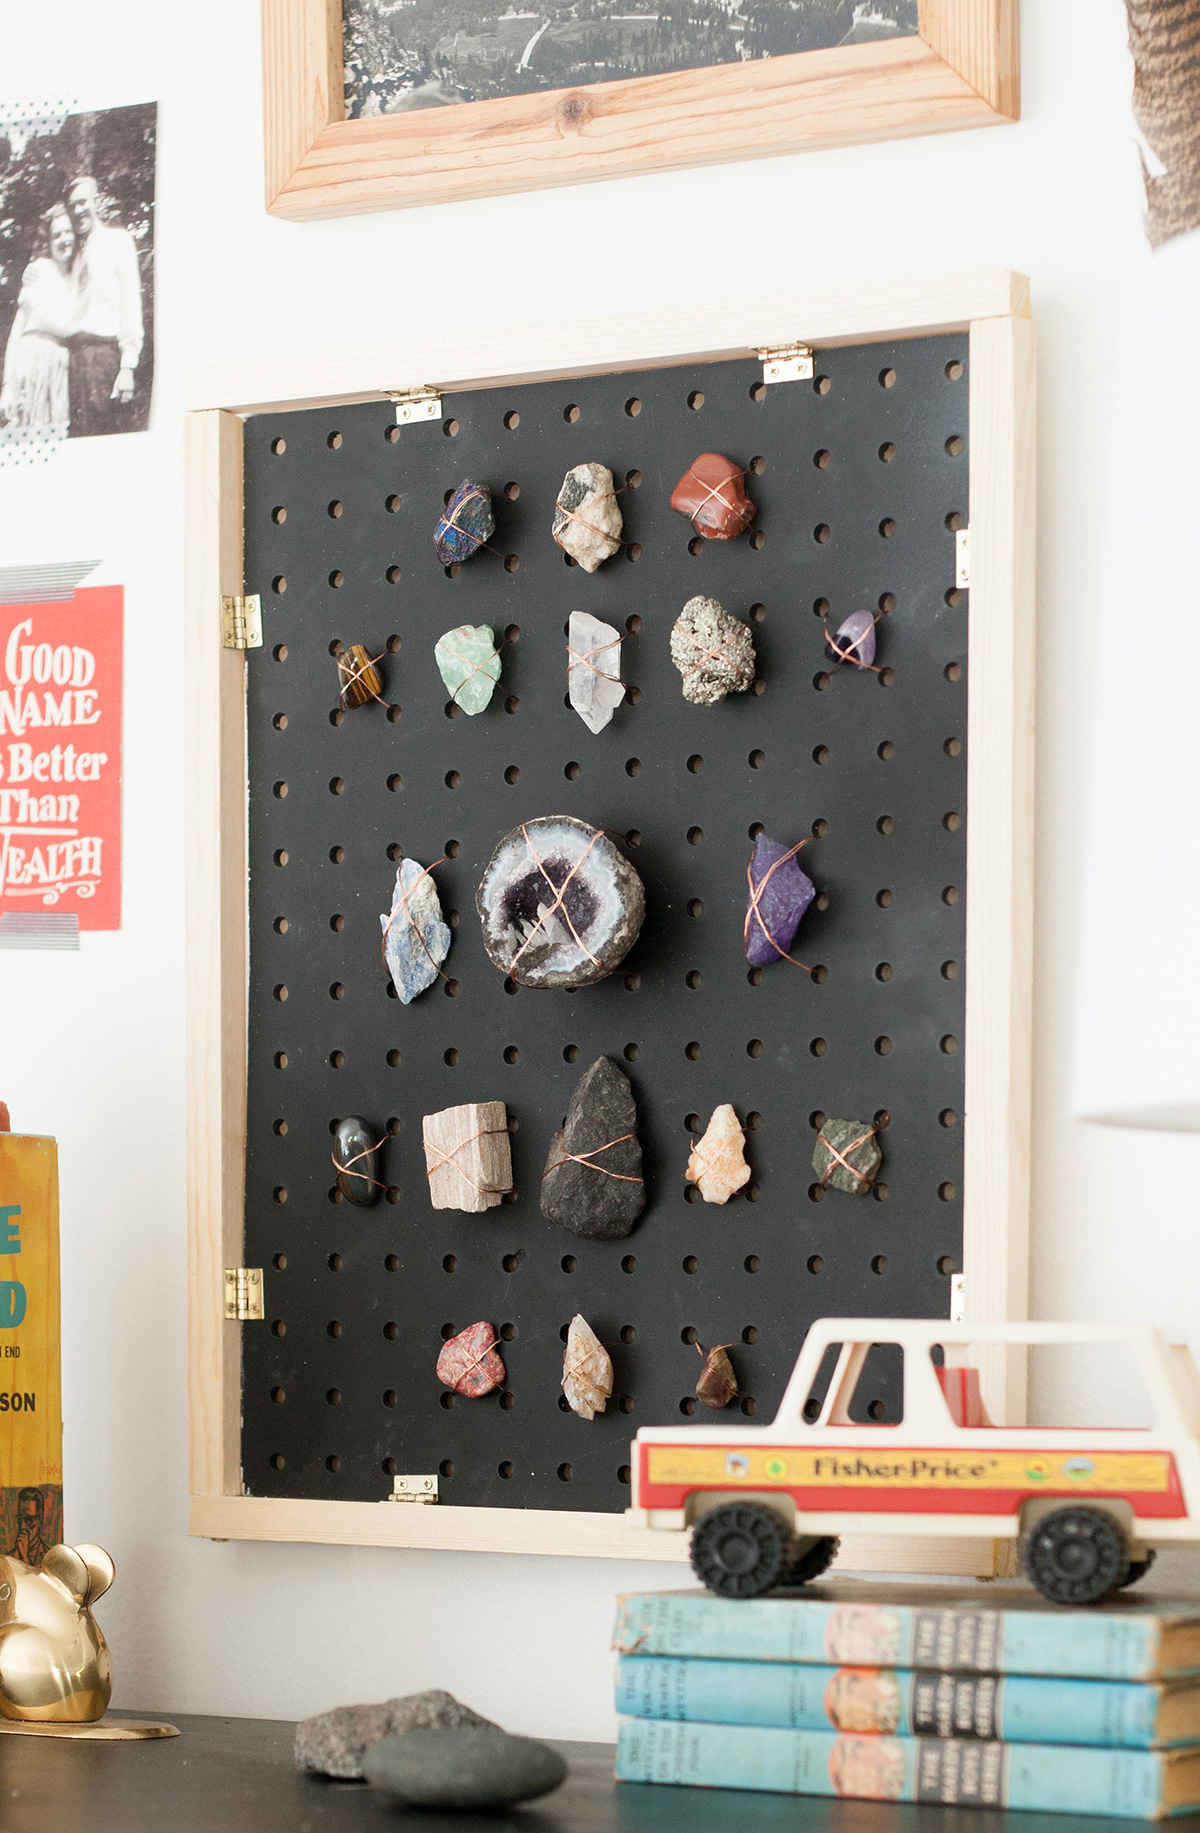 Diy Rock Collection Display Lay Baby Lay Lay Baby Lay